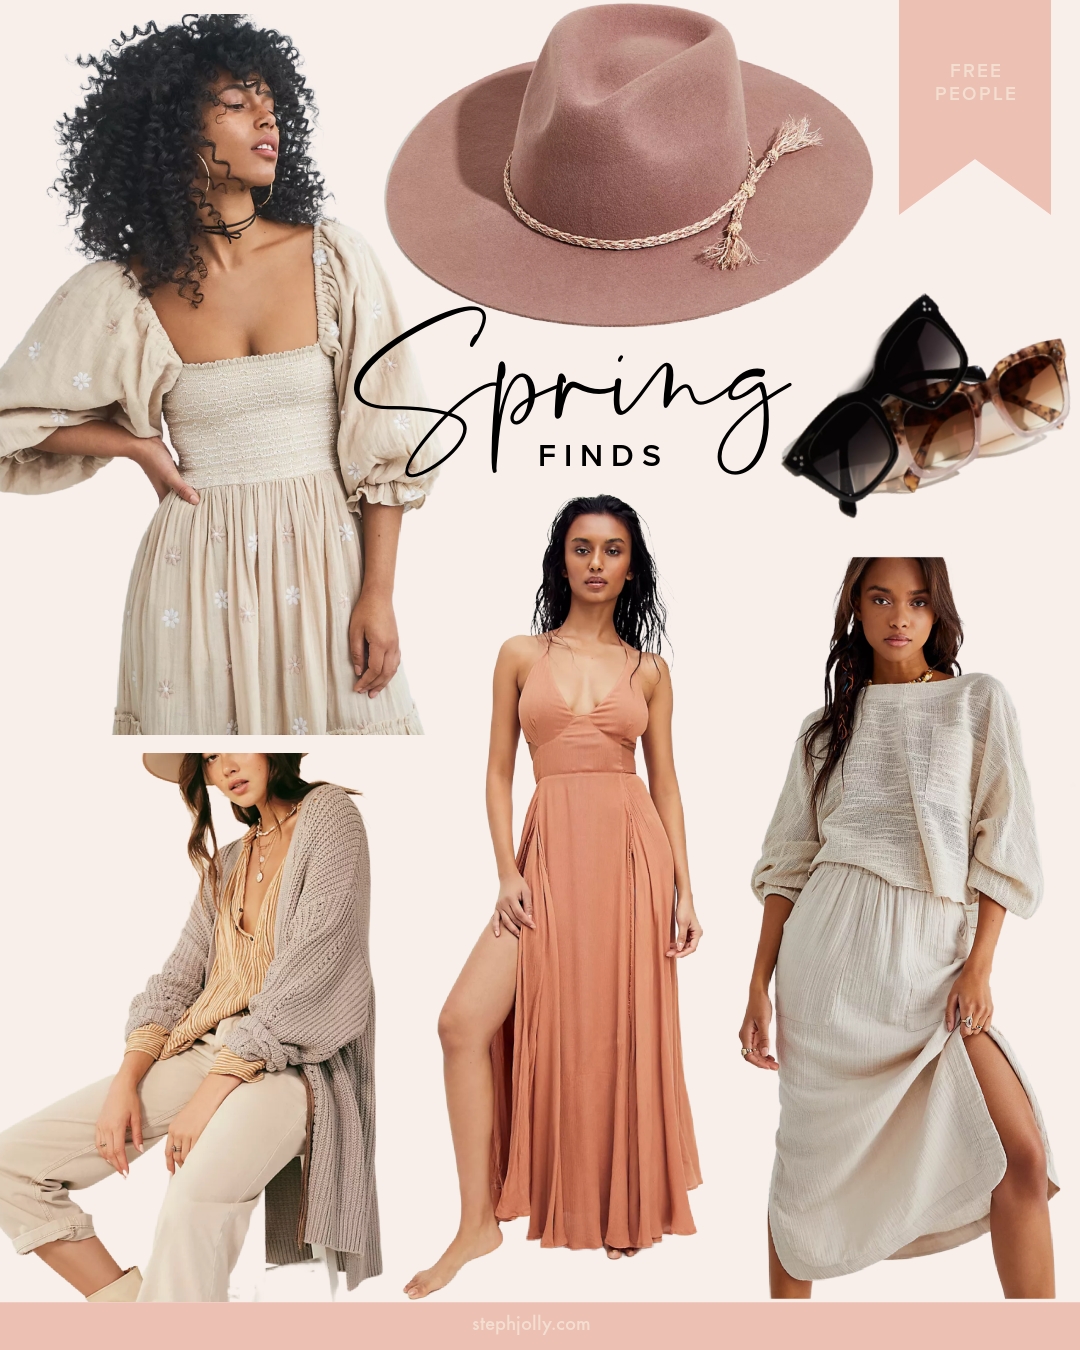 SPRING-FINDS-FREE-PEOPLE